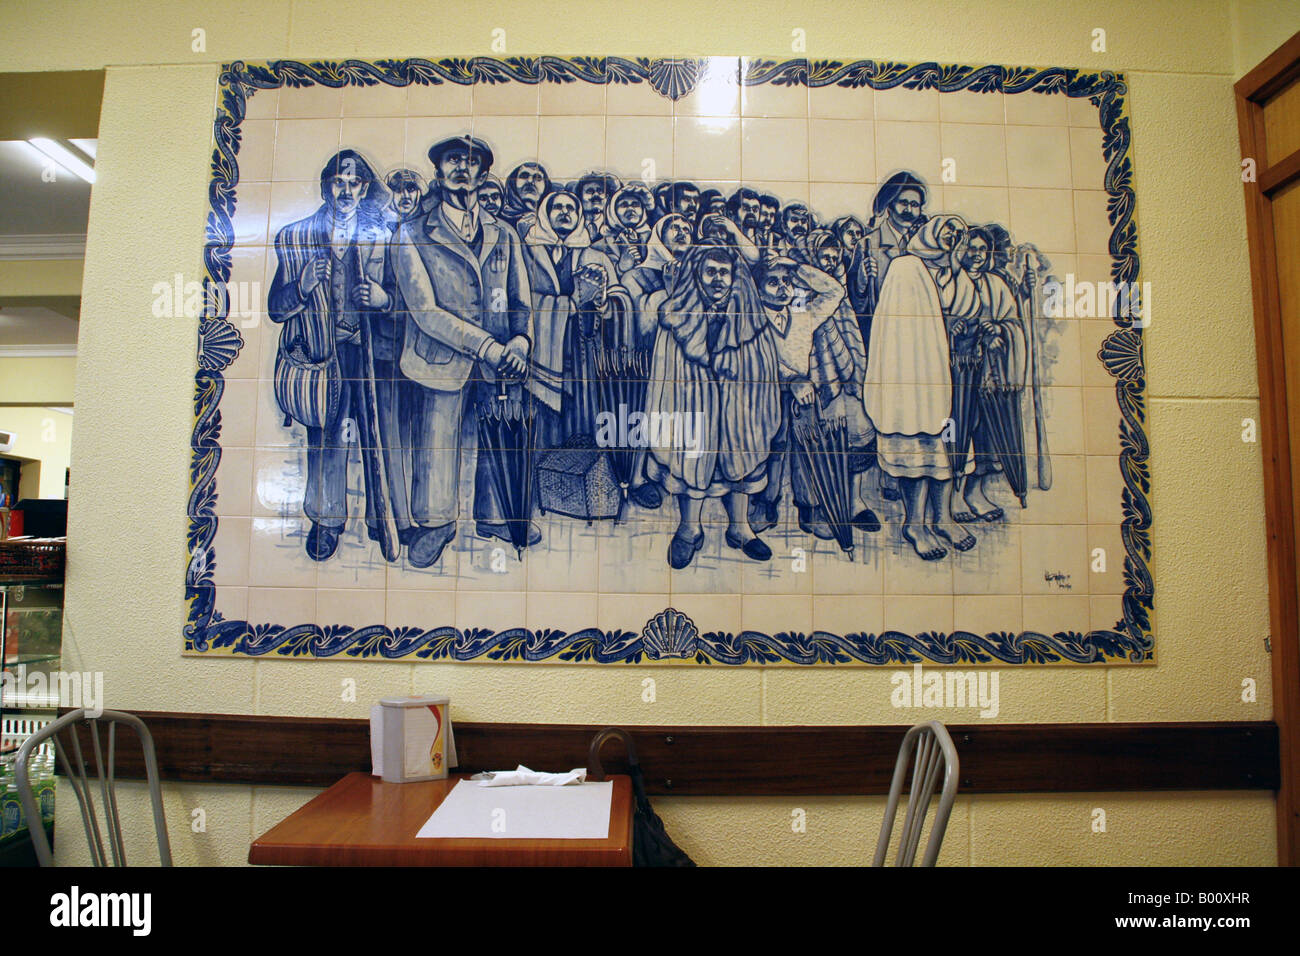 Tiling in traditional Portuguese azulejos style depciting the apparitions of Our Lady of Fatima, Portugal - Stock Image